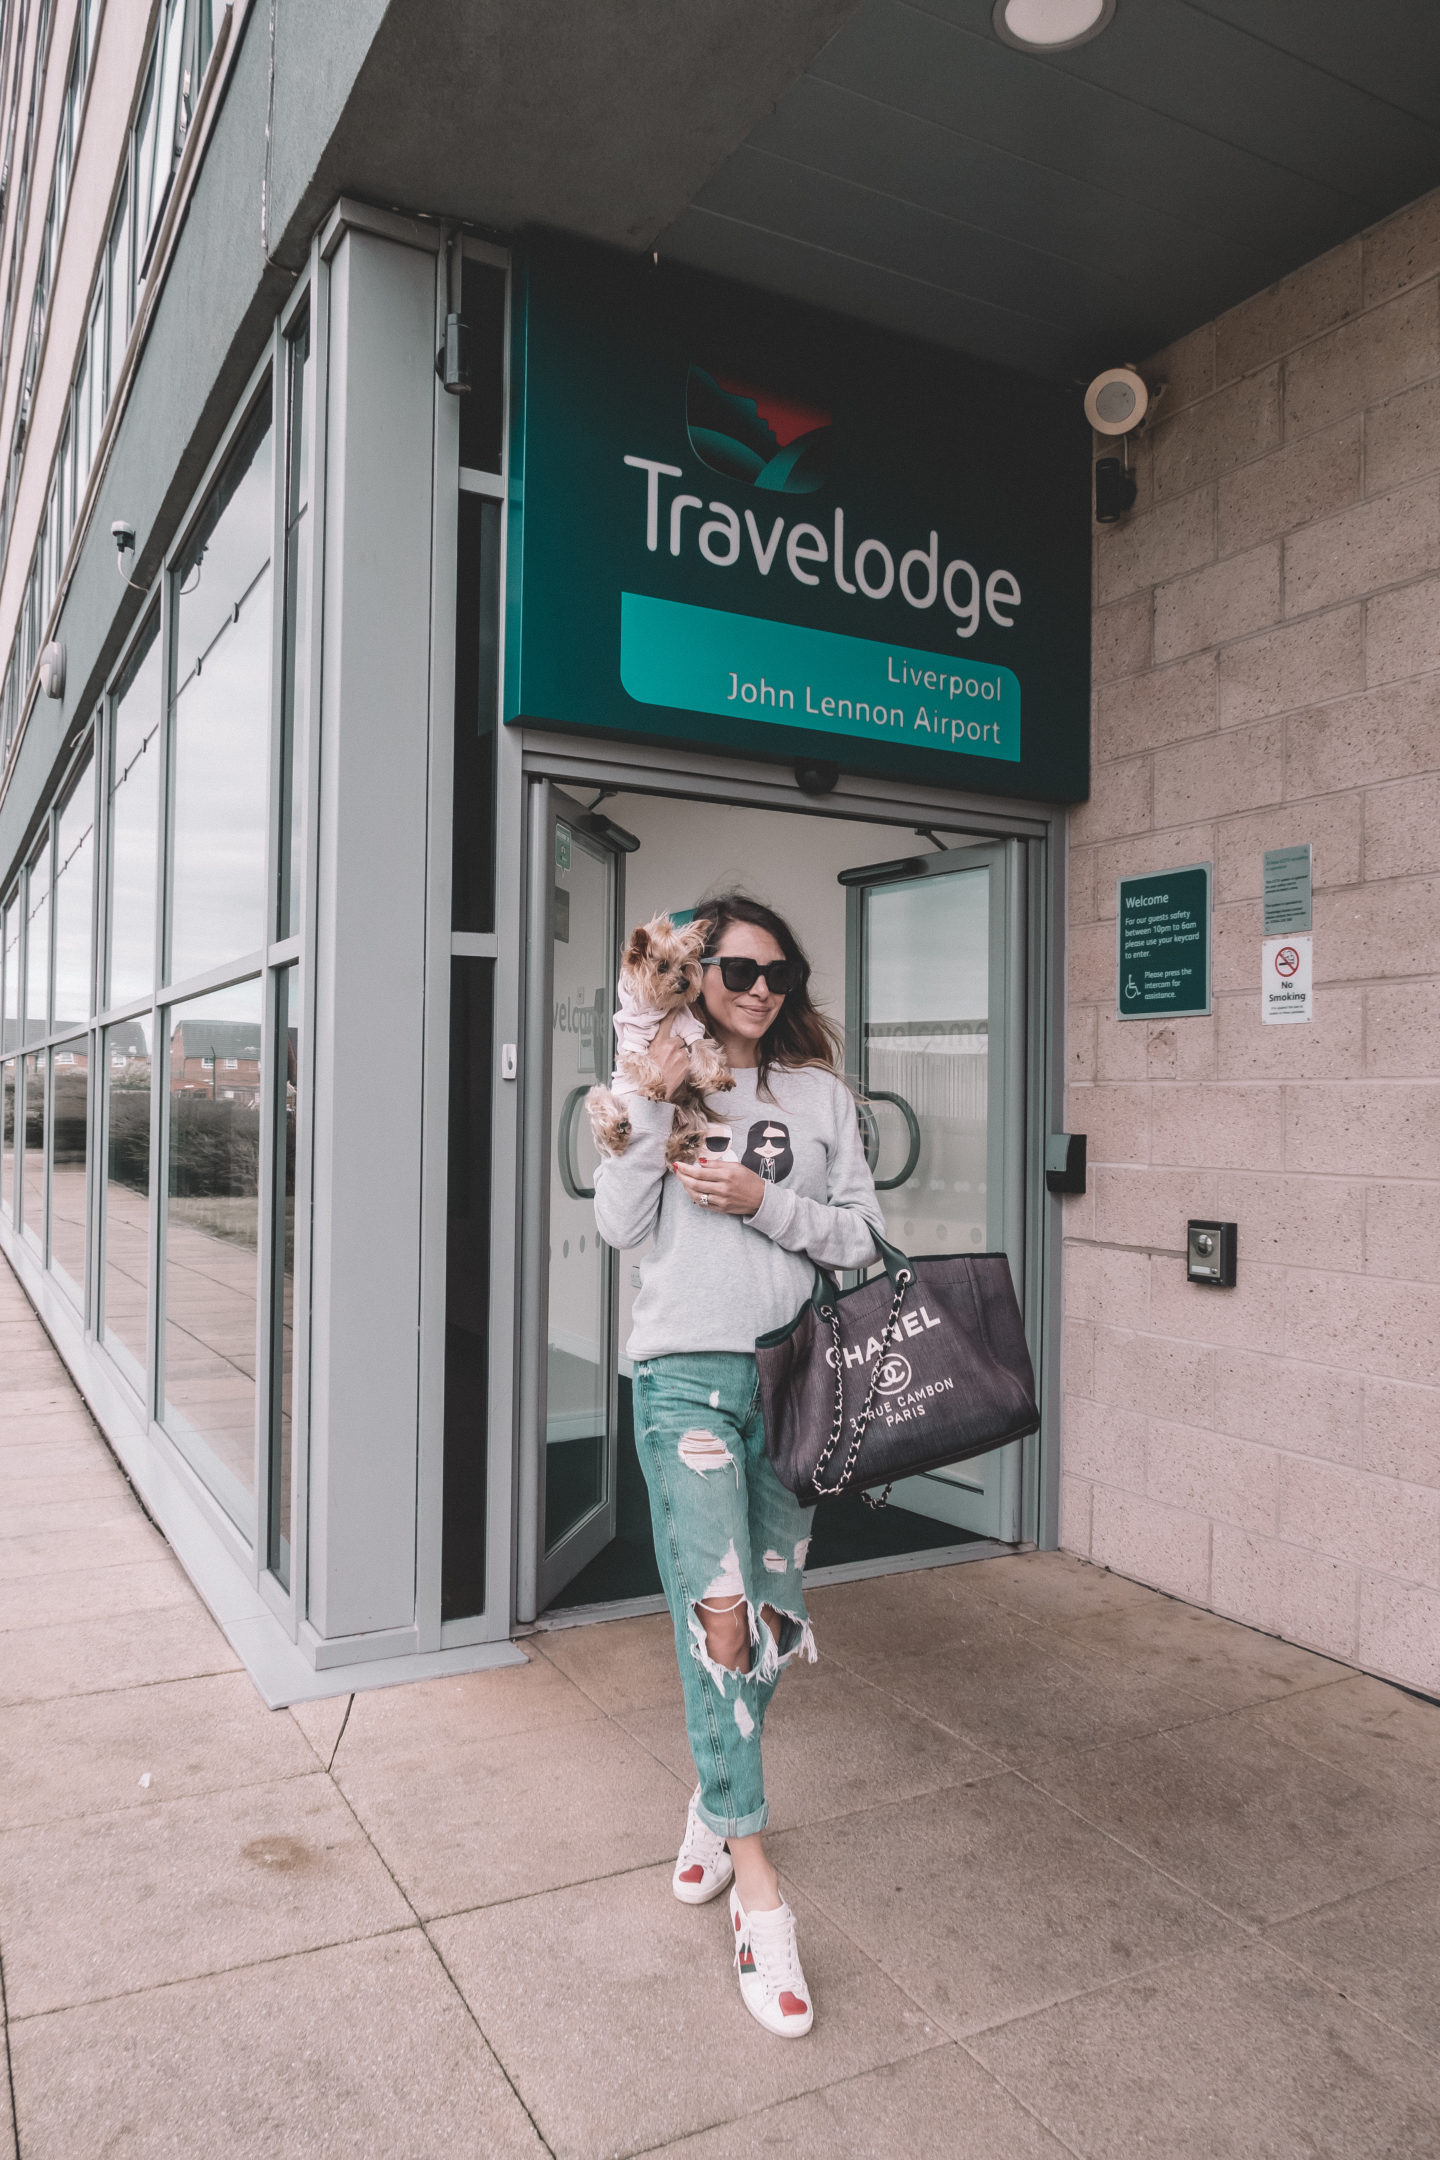 traveloge liverpool pet friendly john lennon